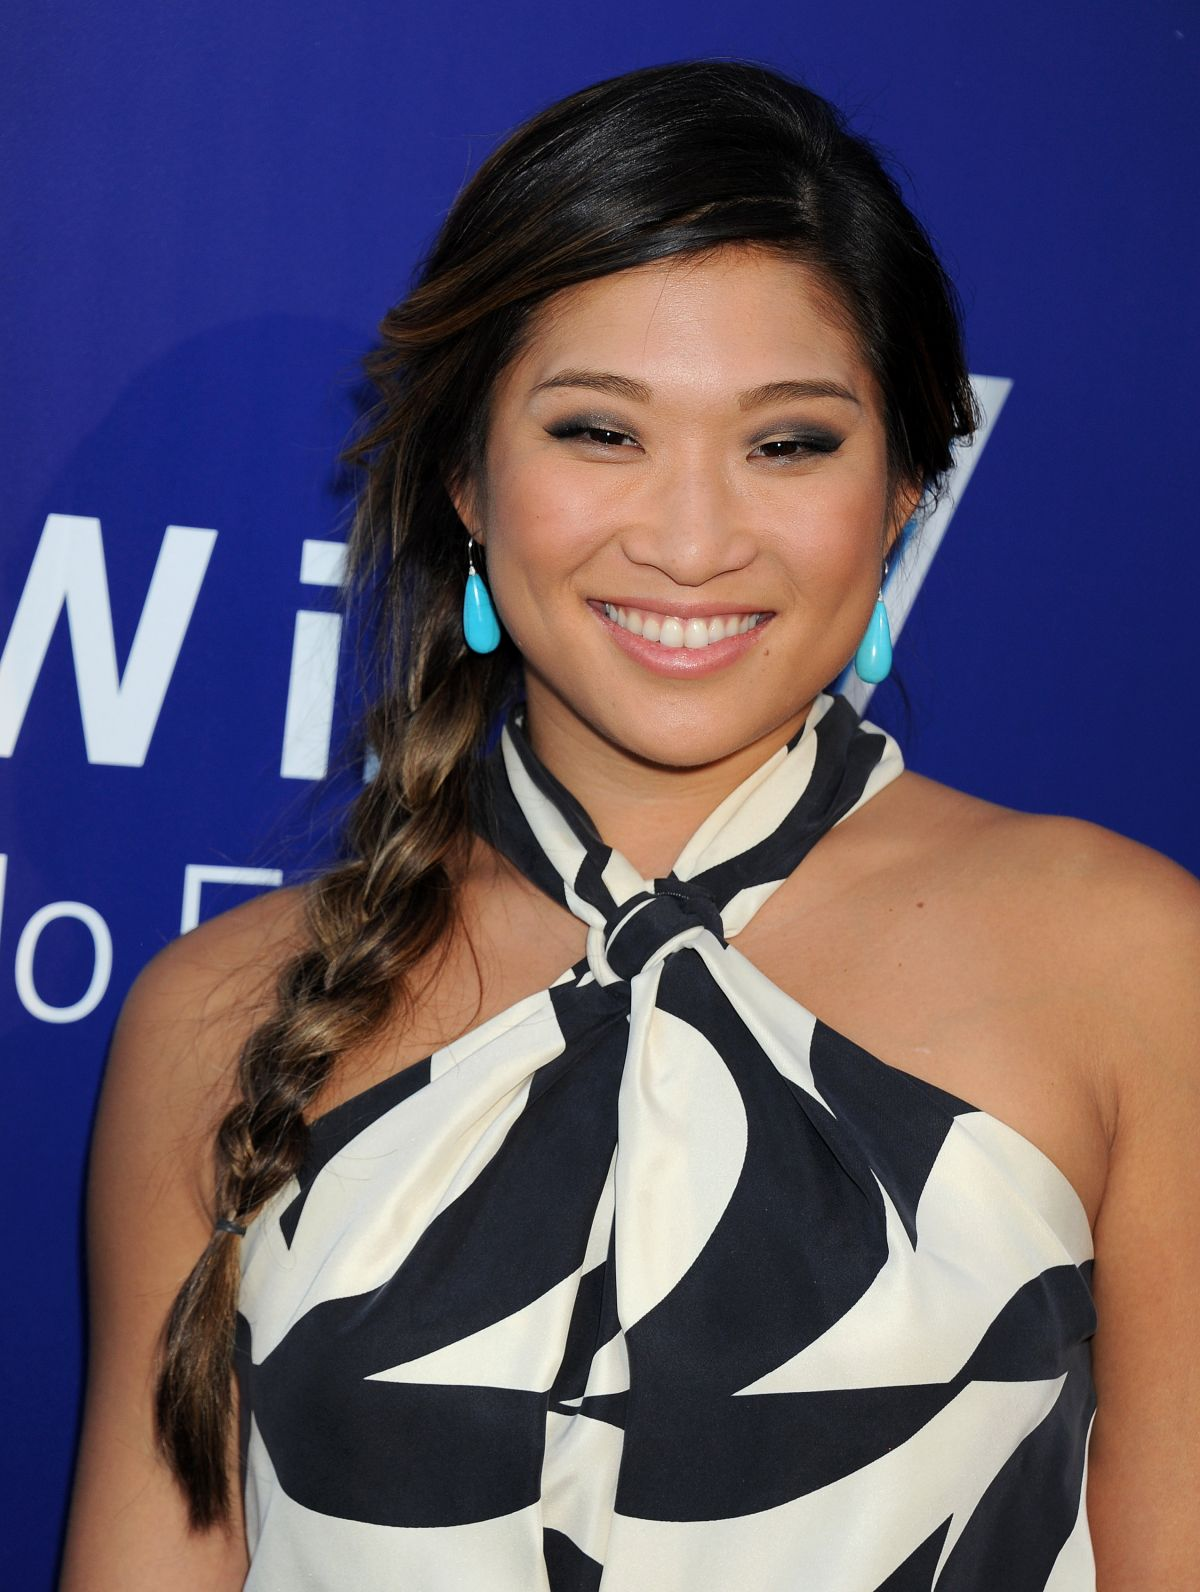 JENNA USHKOWITZ at Oceana Seachange Summer Party